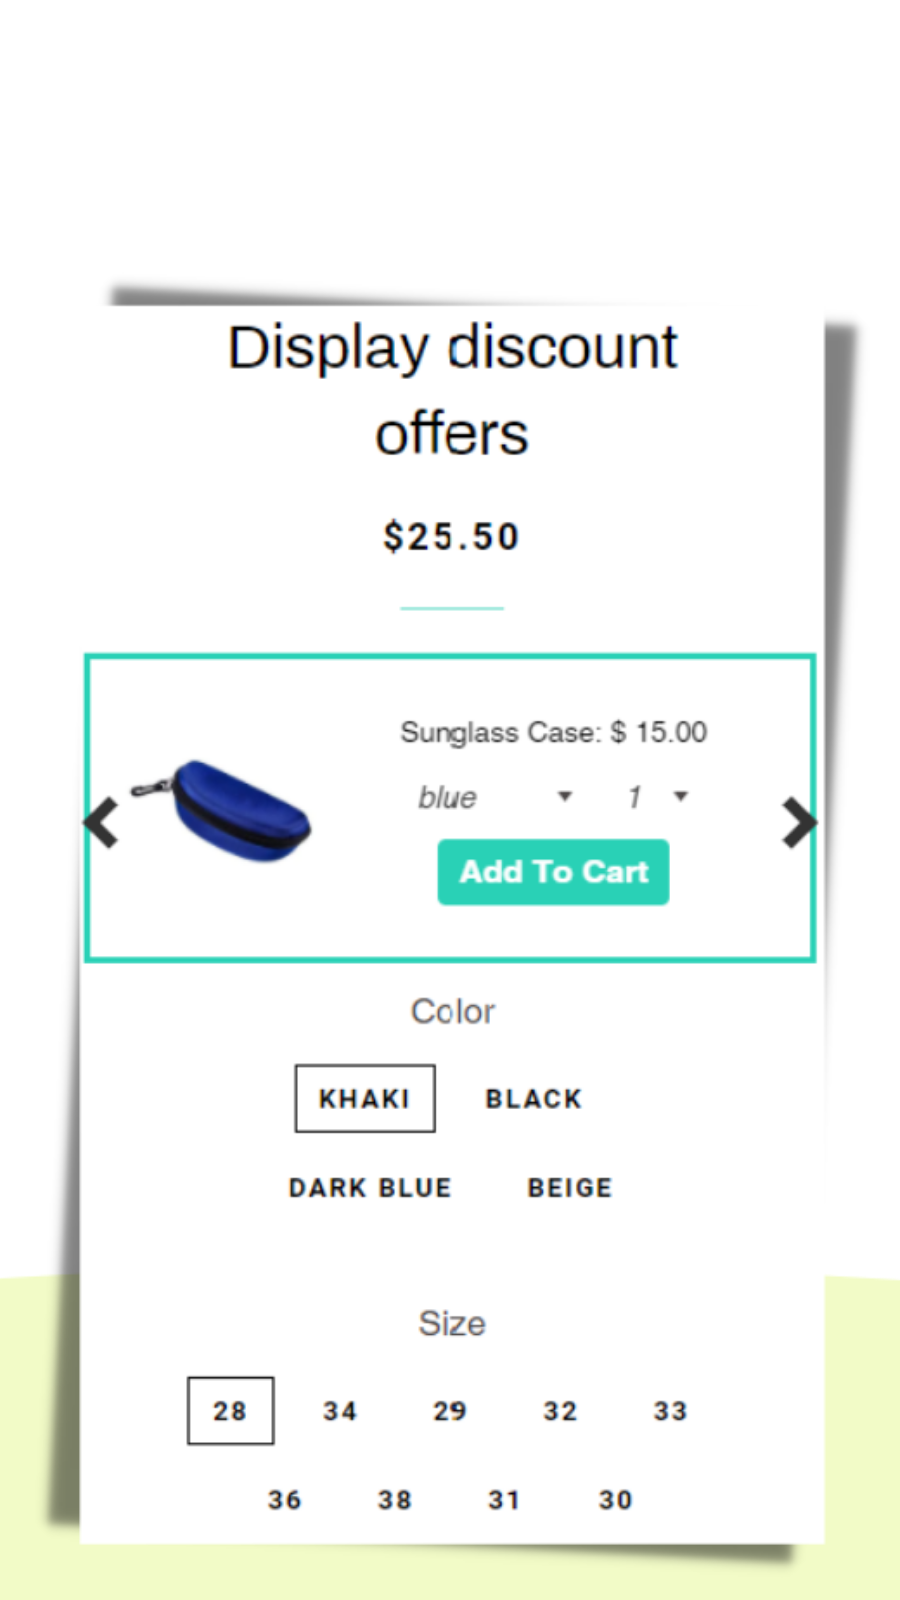 Display discount offers with customized choice sets